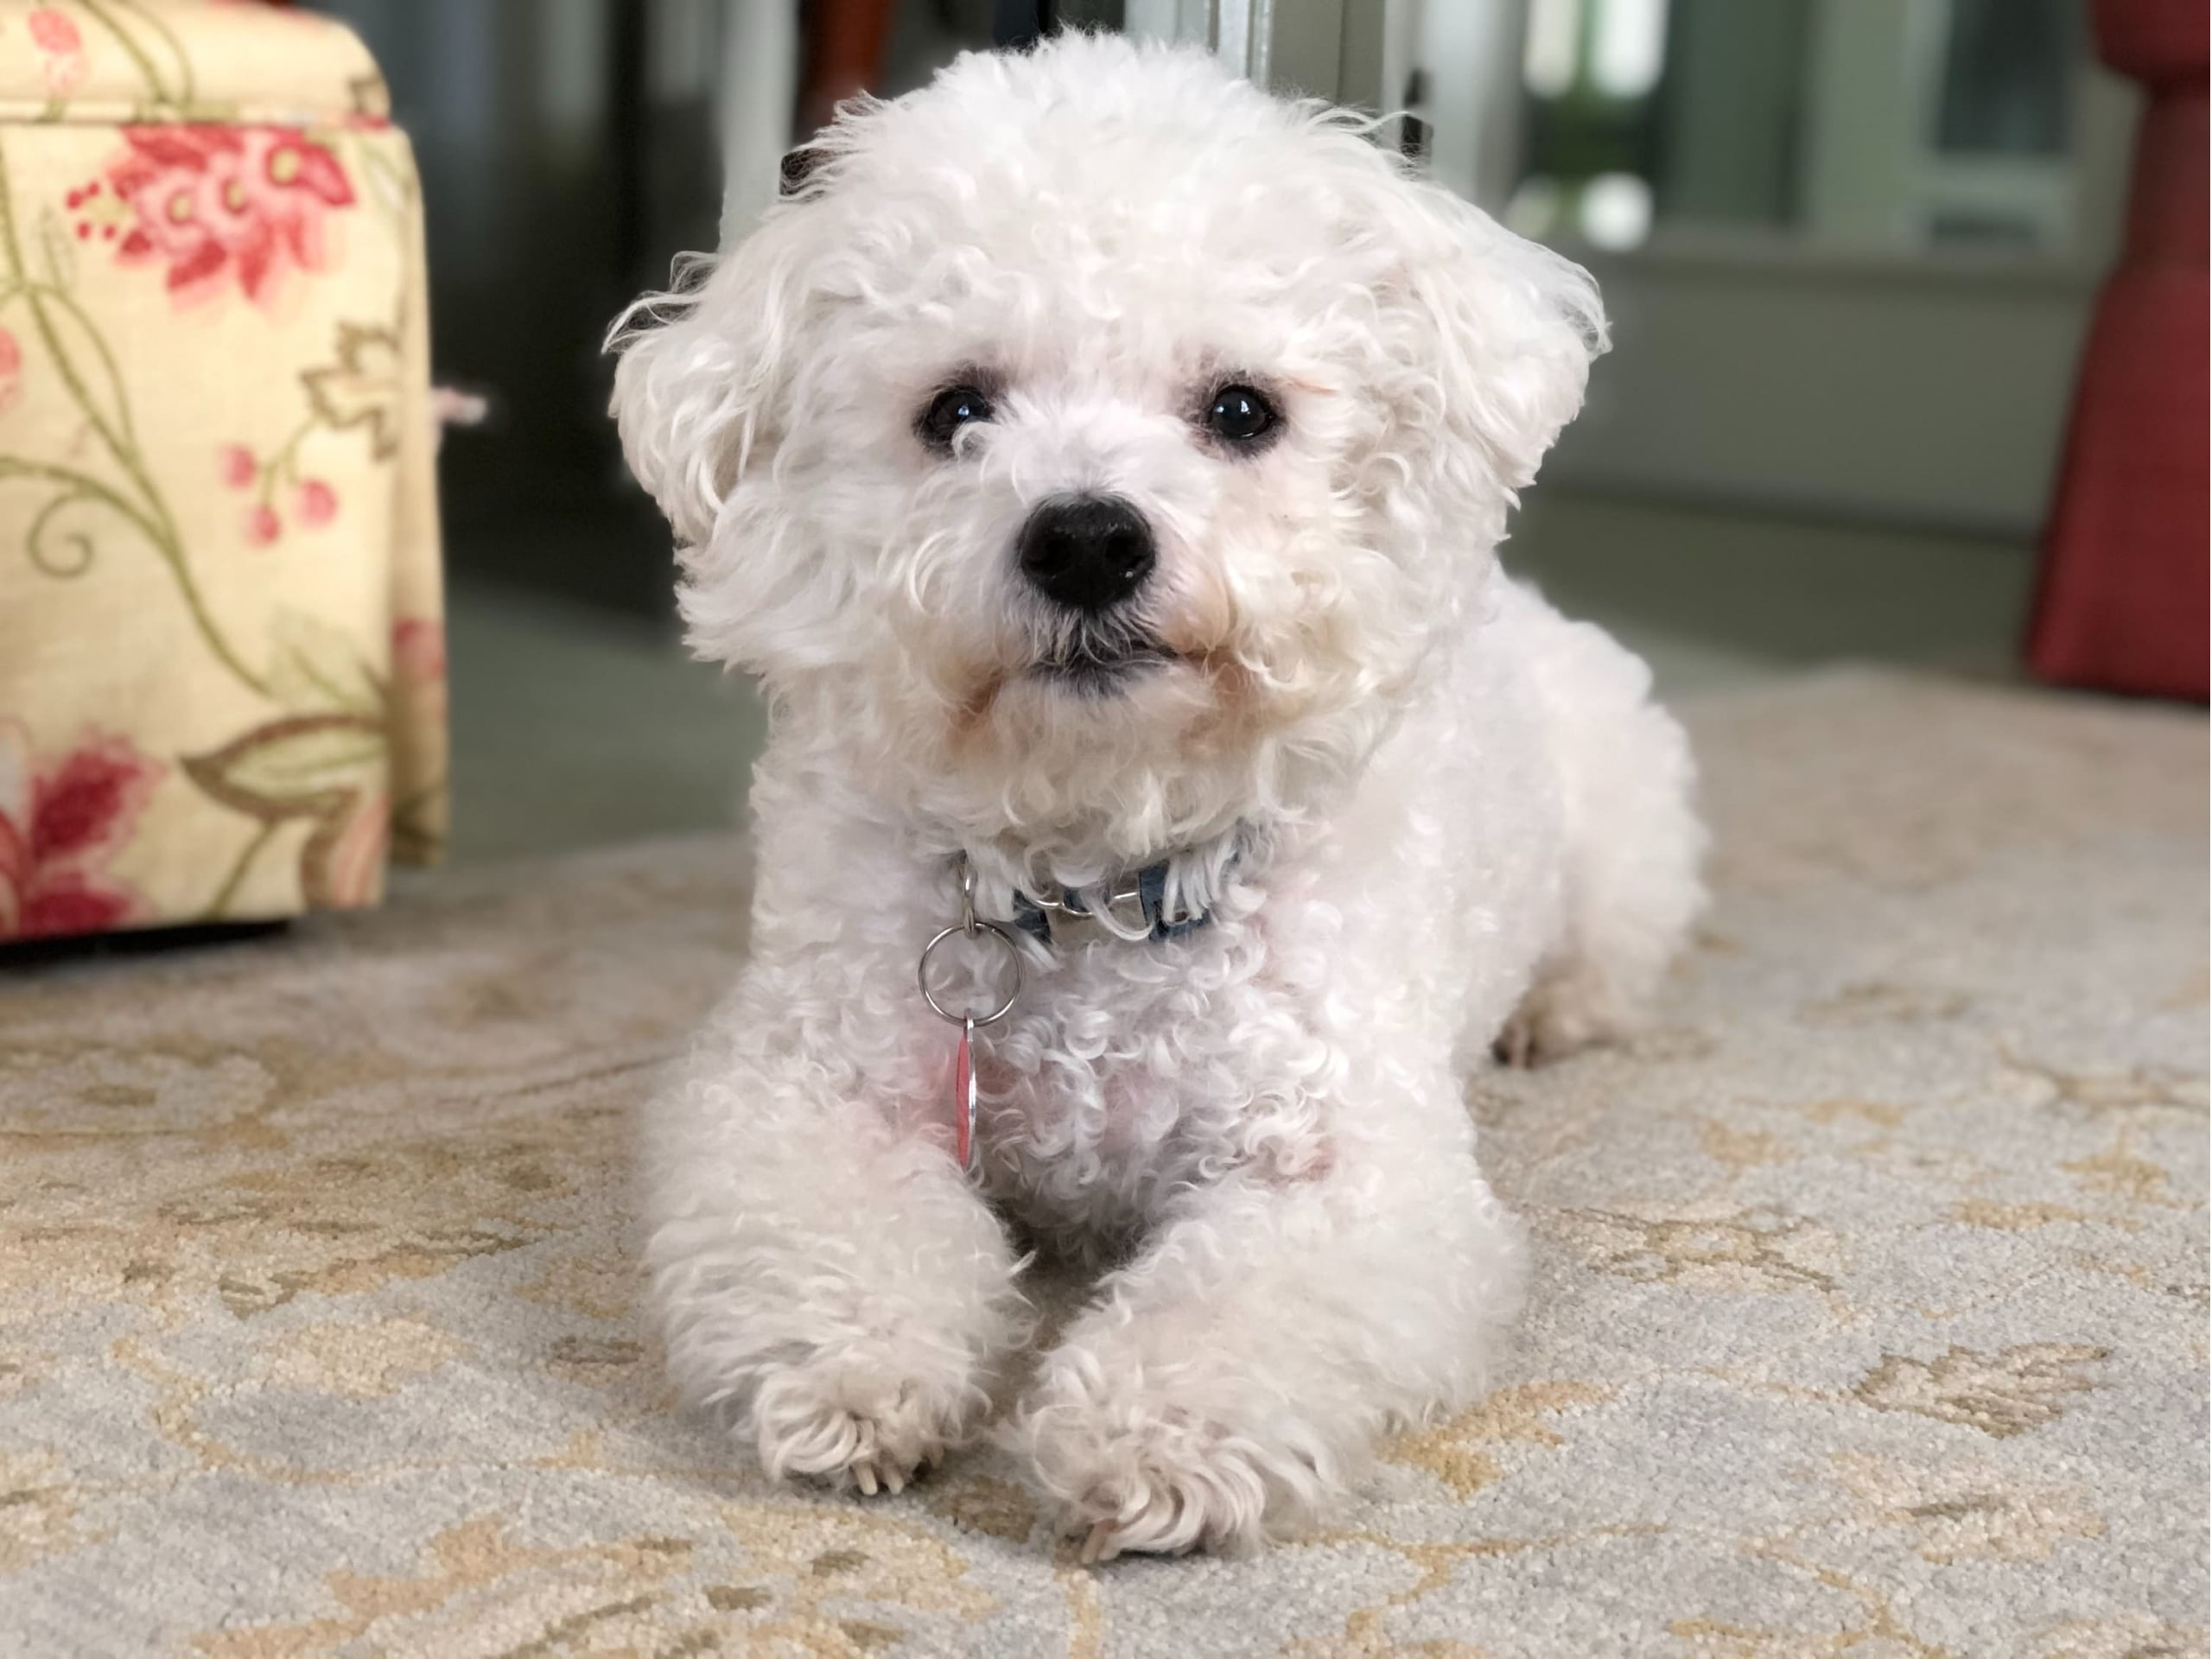 A small dog laying down on a carpet in a small room with its head perked up, wearing a collar and ID tag.